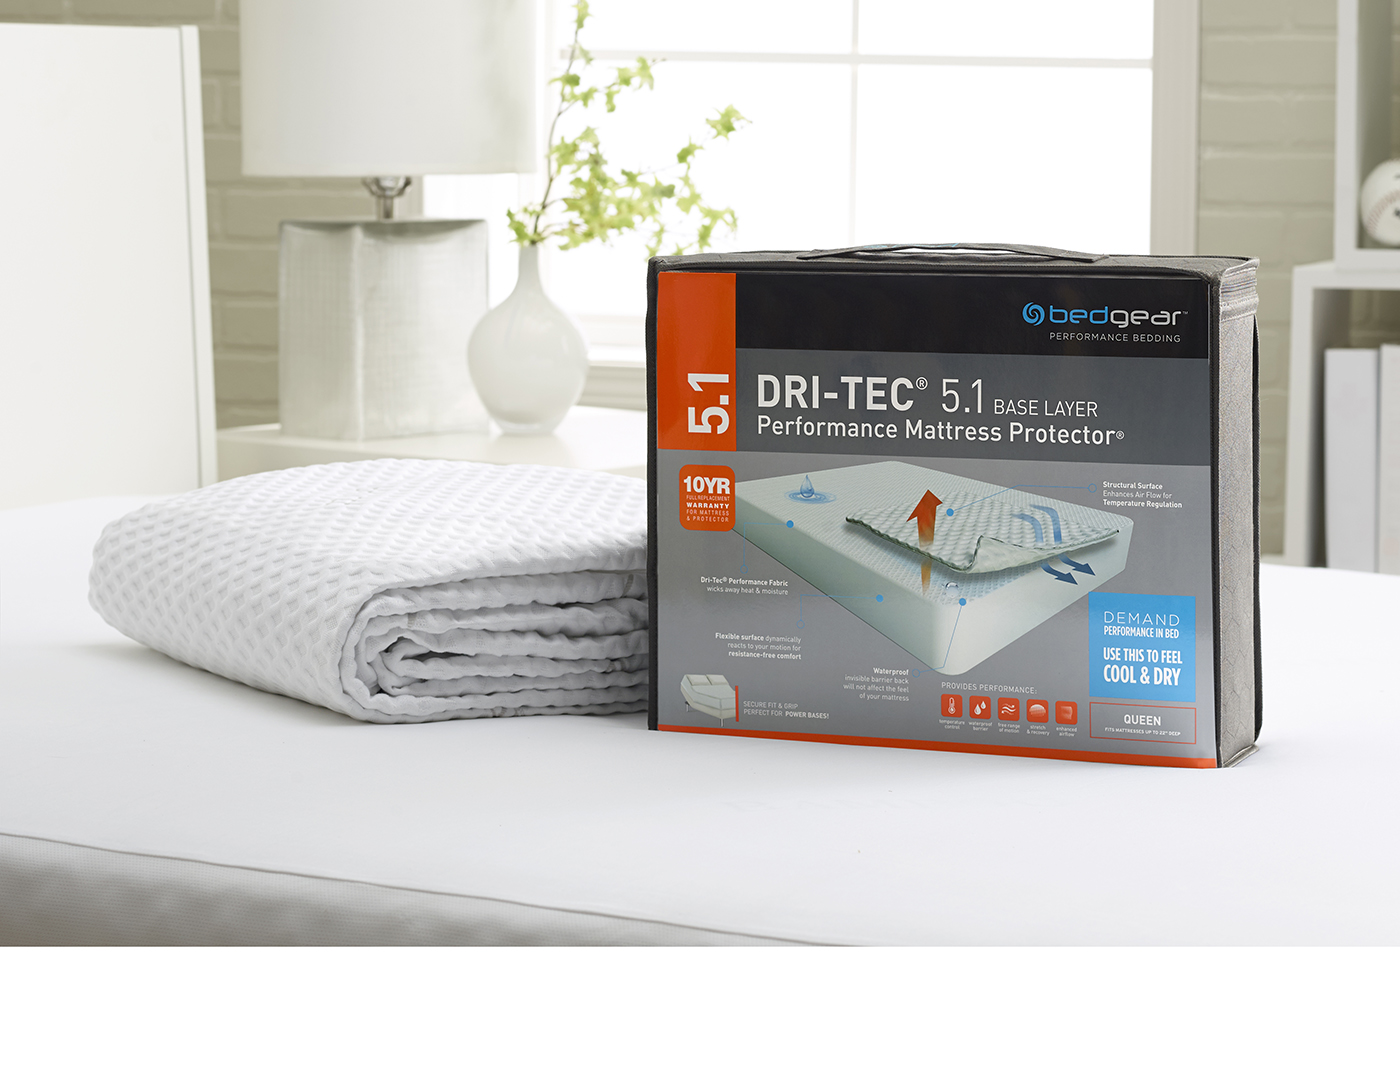 bedgear 5.1 Dri-Tec Moisture Wicking Full Mattress Protector